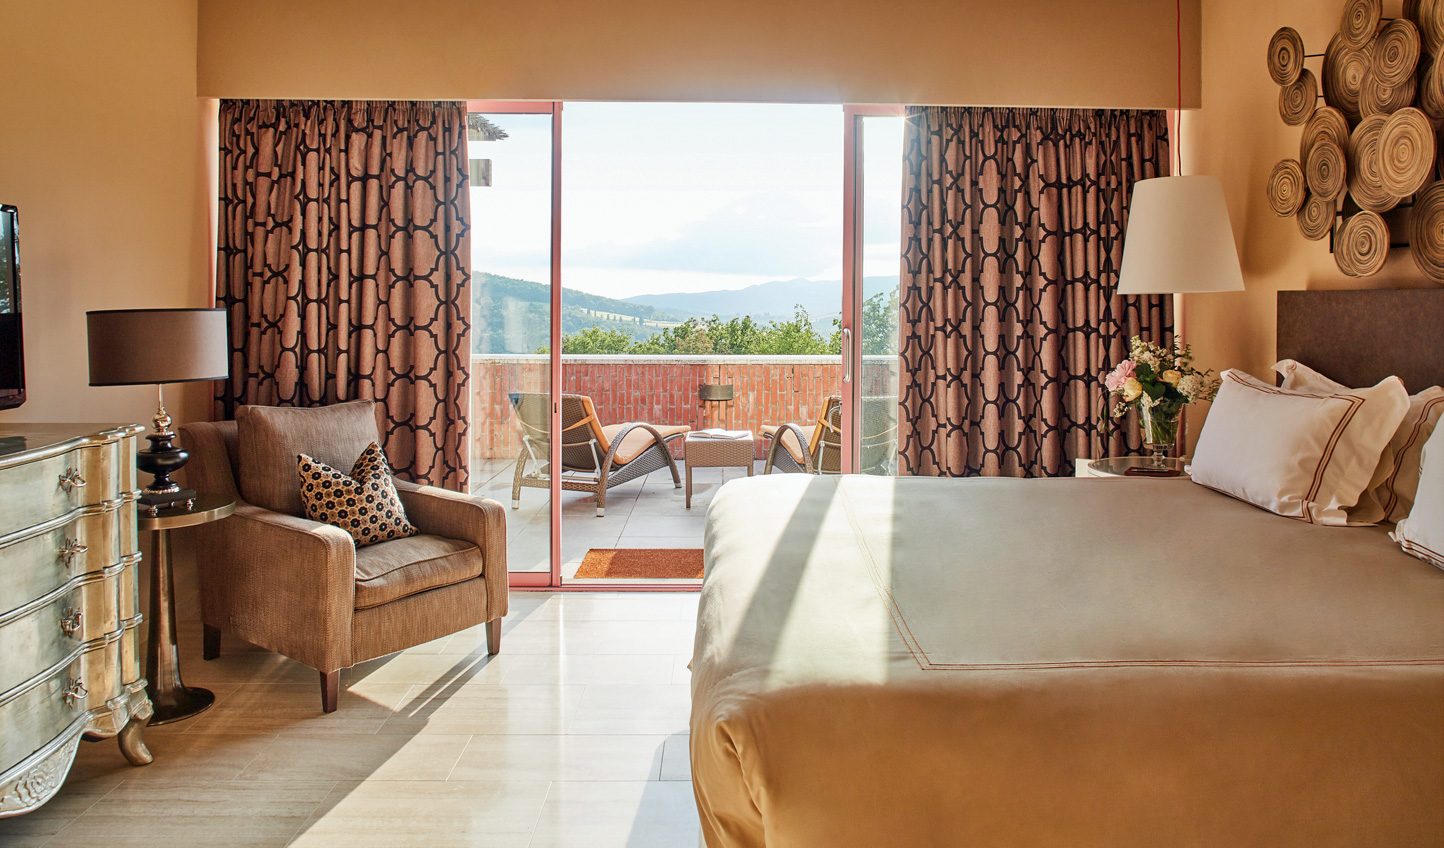 Suites designed in harmony with the natural landscapes